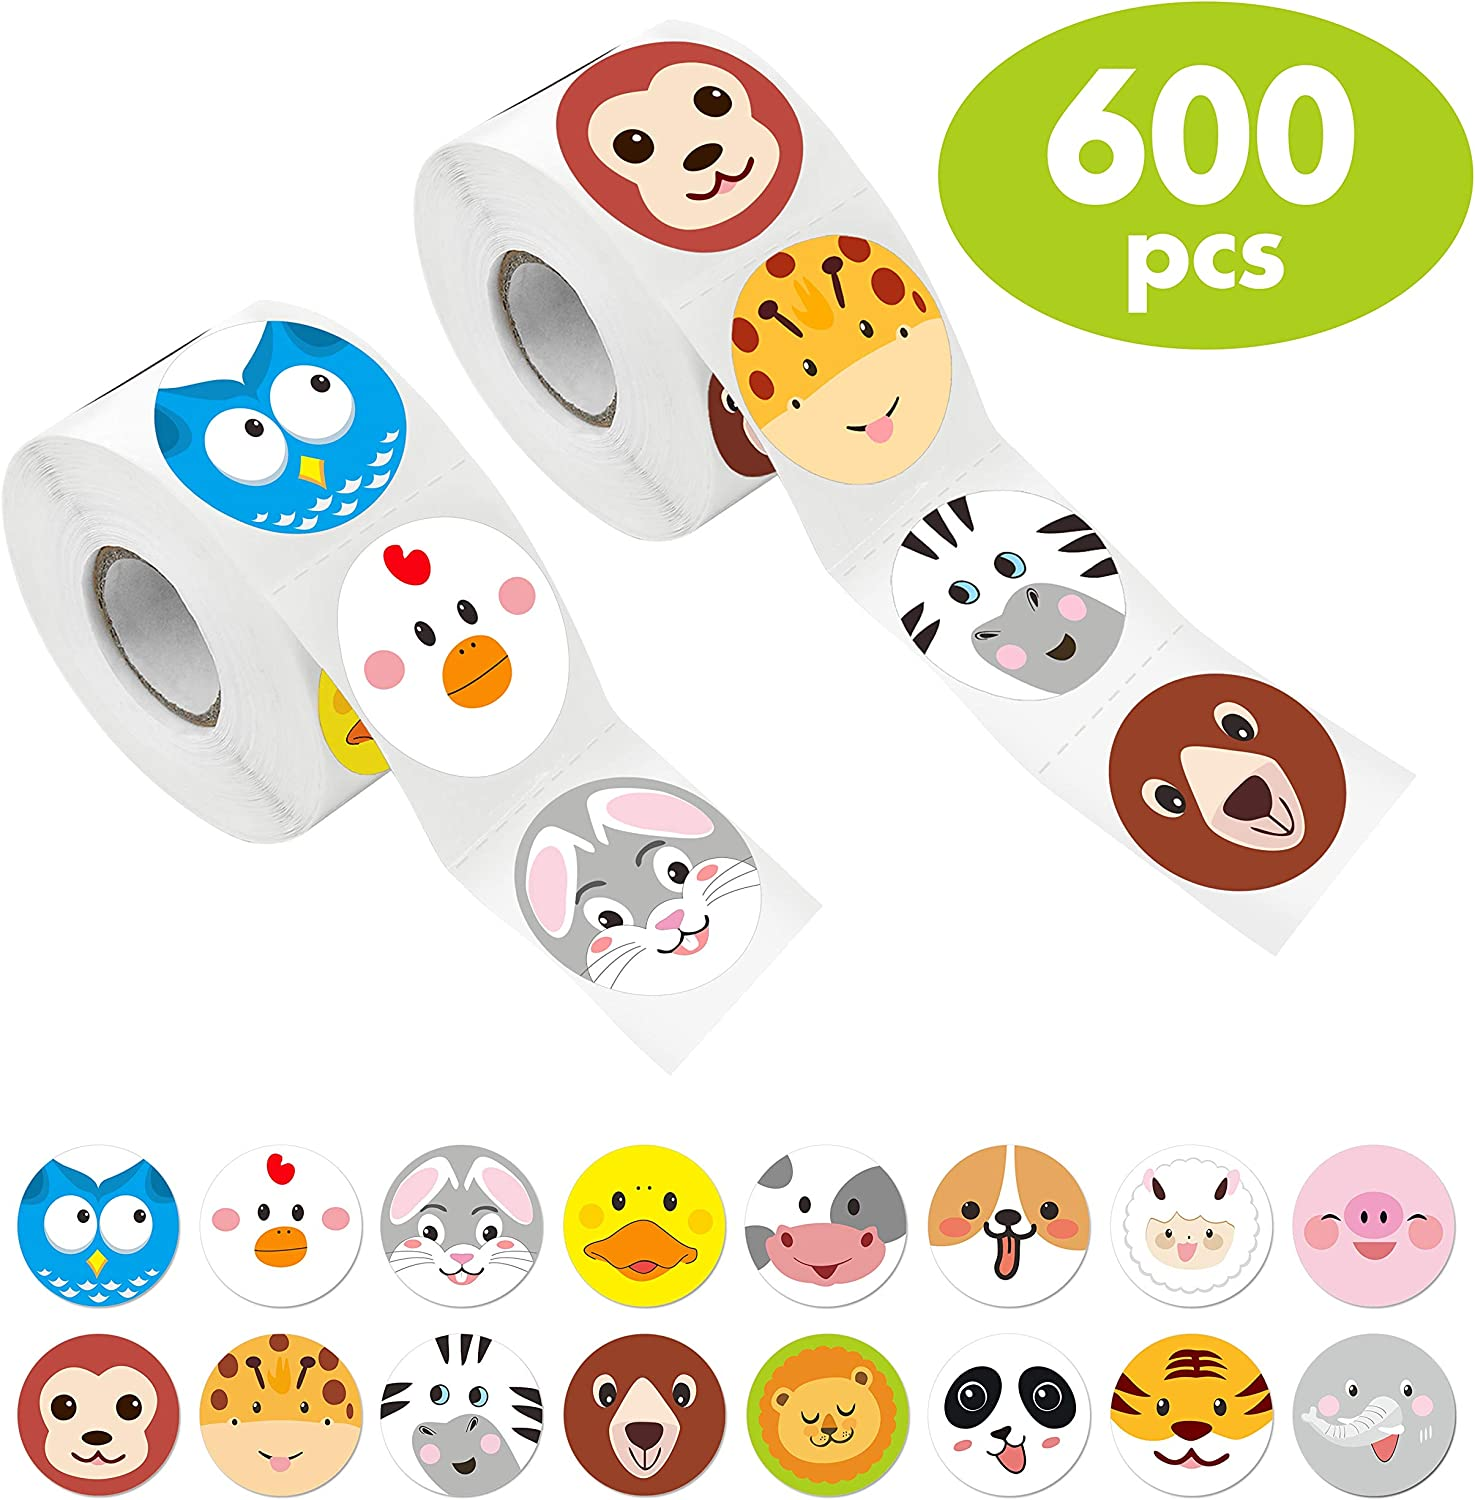 "Hebayy 600 Pcs Adorable Round Face Animal Stickers in 16 Designs with Perforated Line for Kids Party Favor (Each Measures 1.5"" in Diameter)"